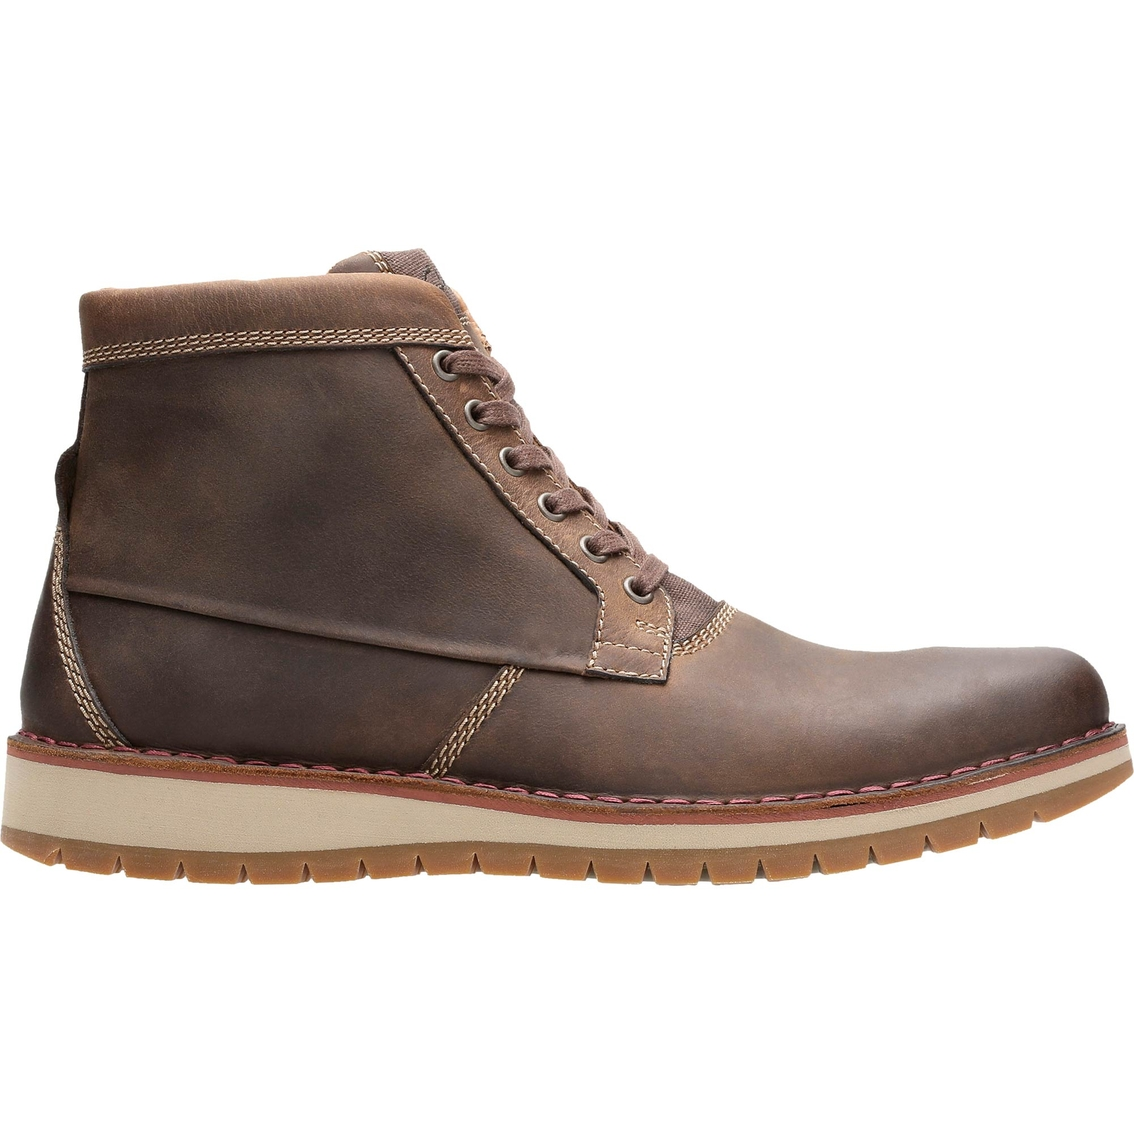 Clarks Varby Top Casual Boots